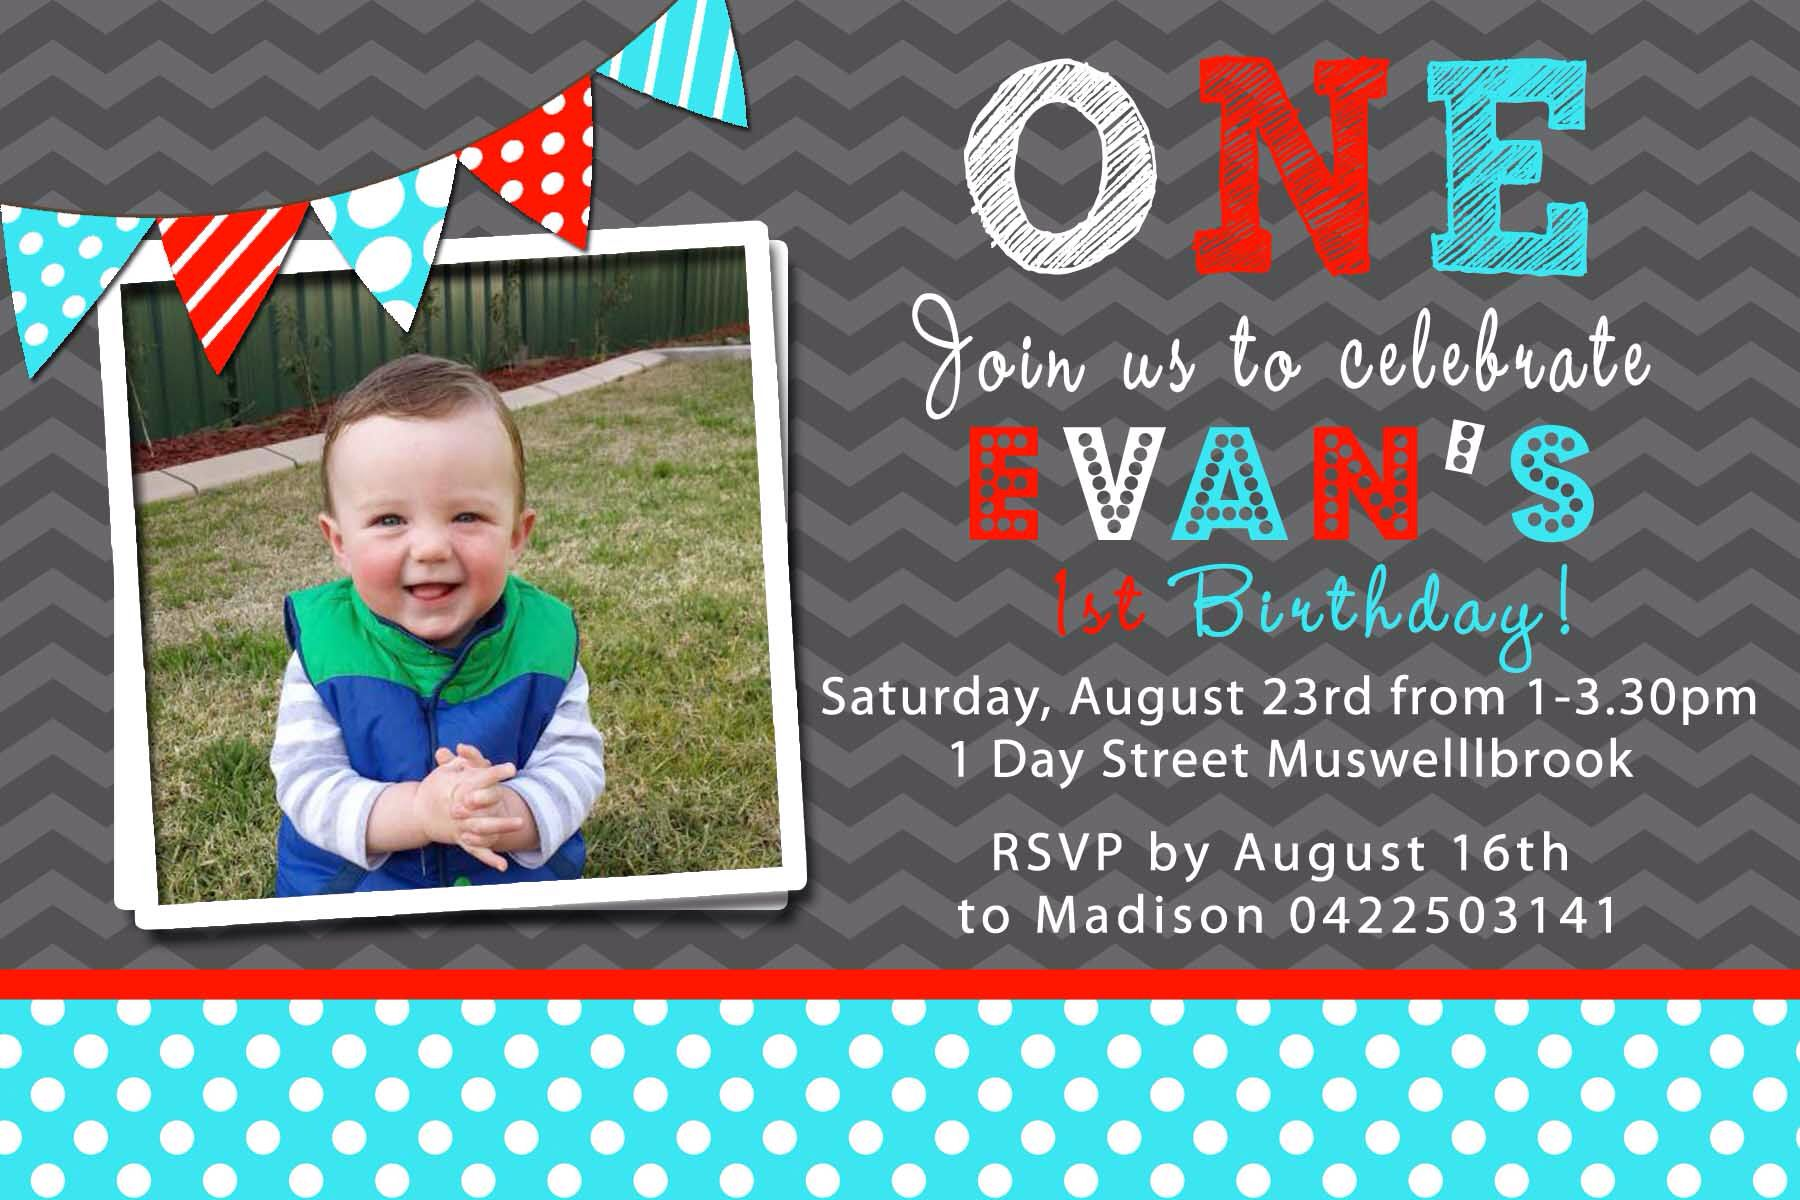 Evans 1st birthday invite Projects to try Pinterest